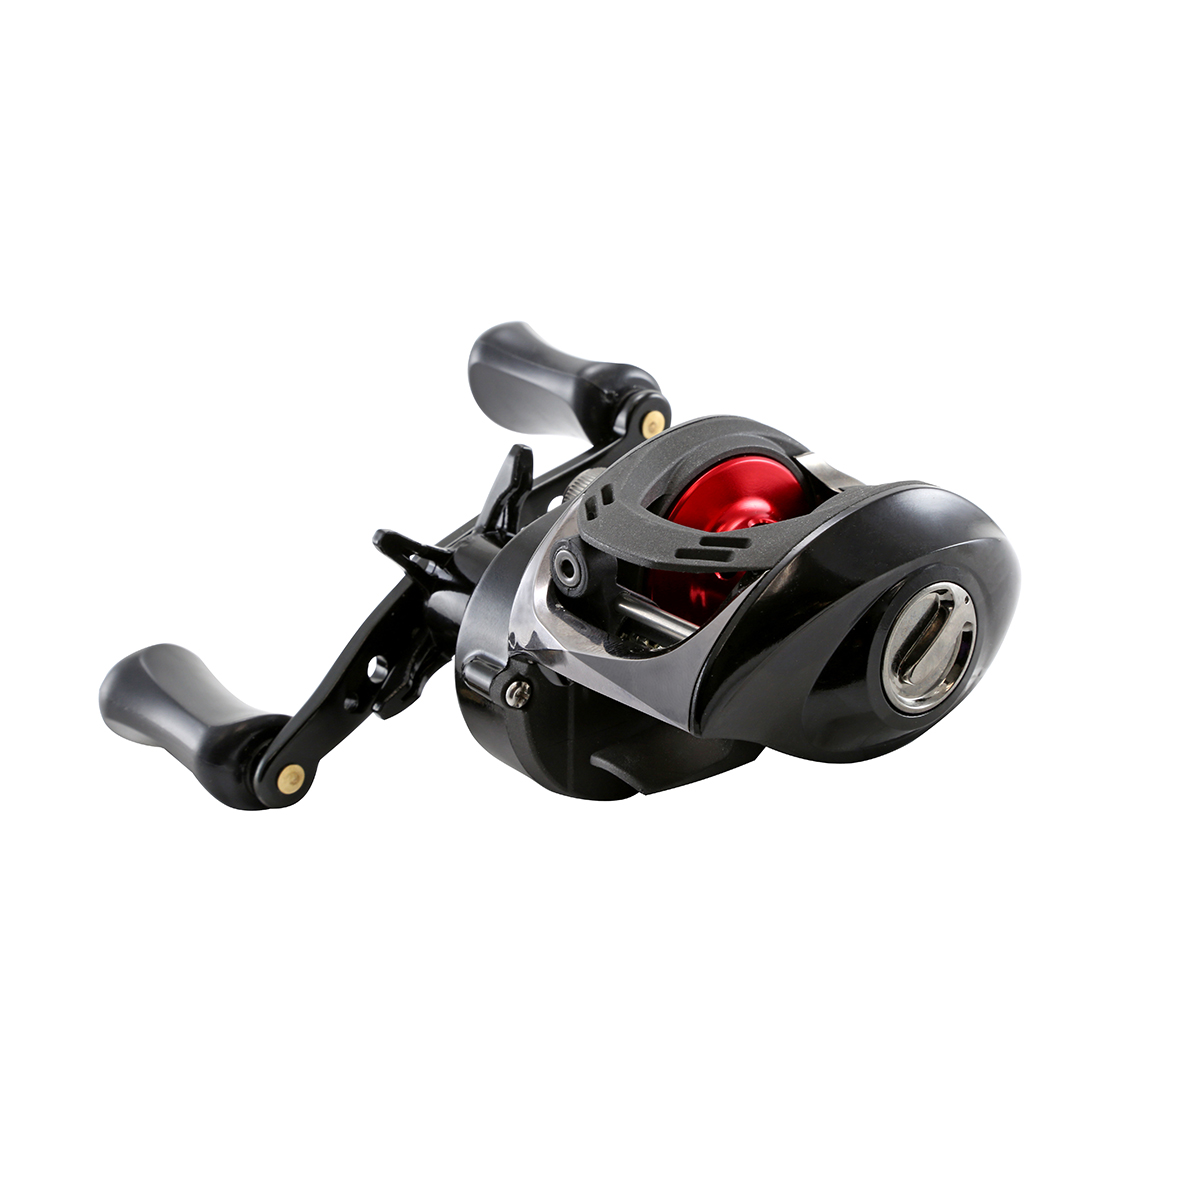 Ceymar Low Profile Baitcast Reel - Ceymar Low Profile Baitcast Reel